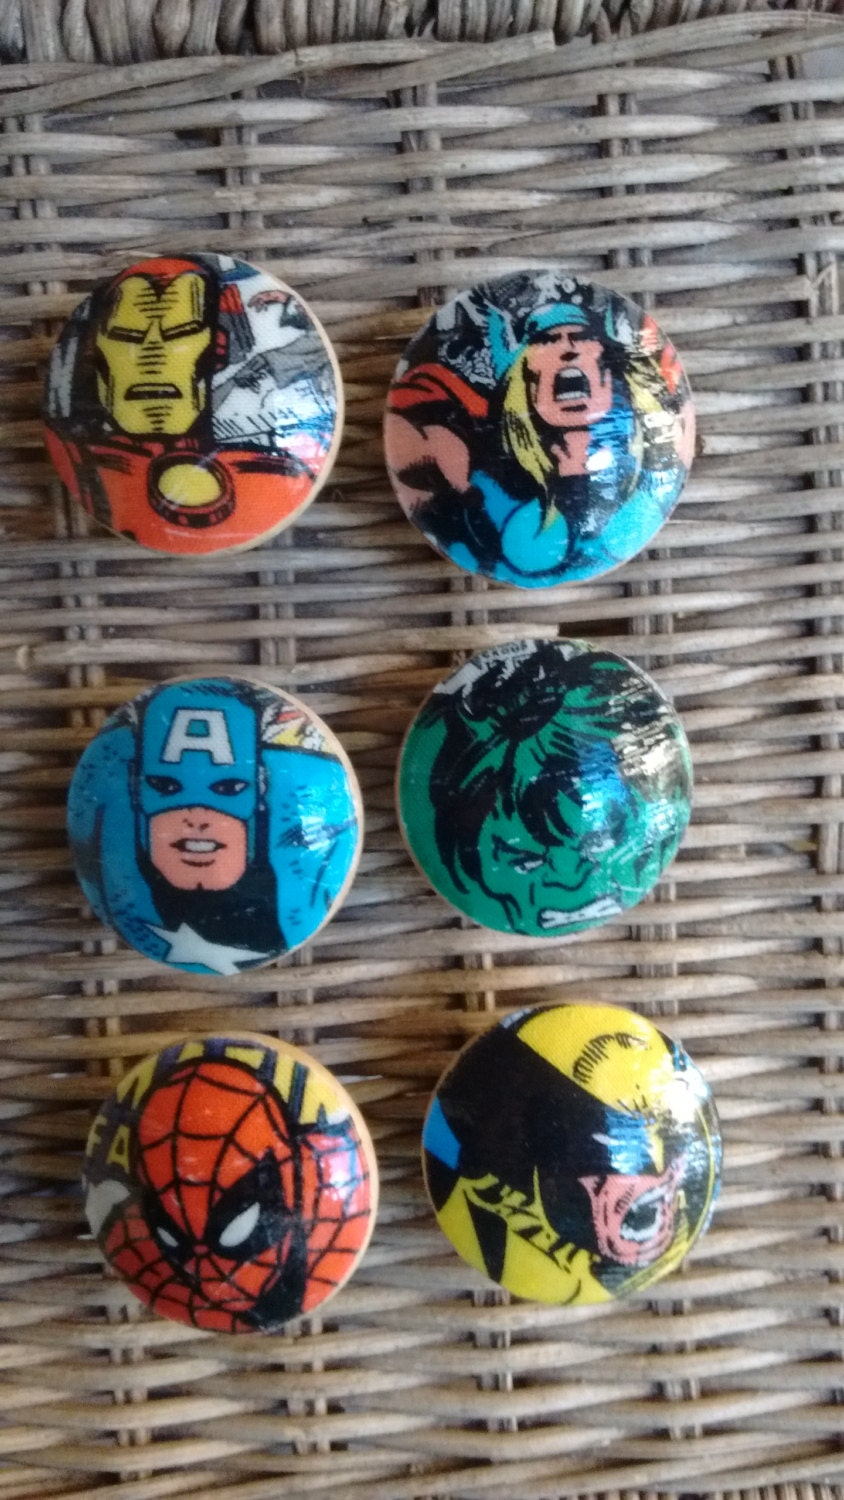 Marvel Avengers Handmade Knobs Drawer Pull Set Of 6 Dresser